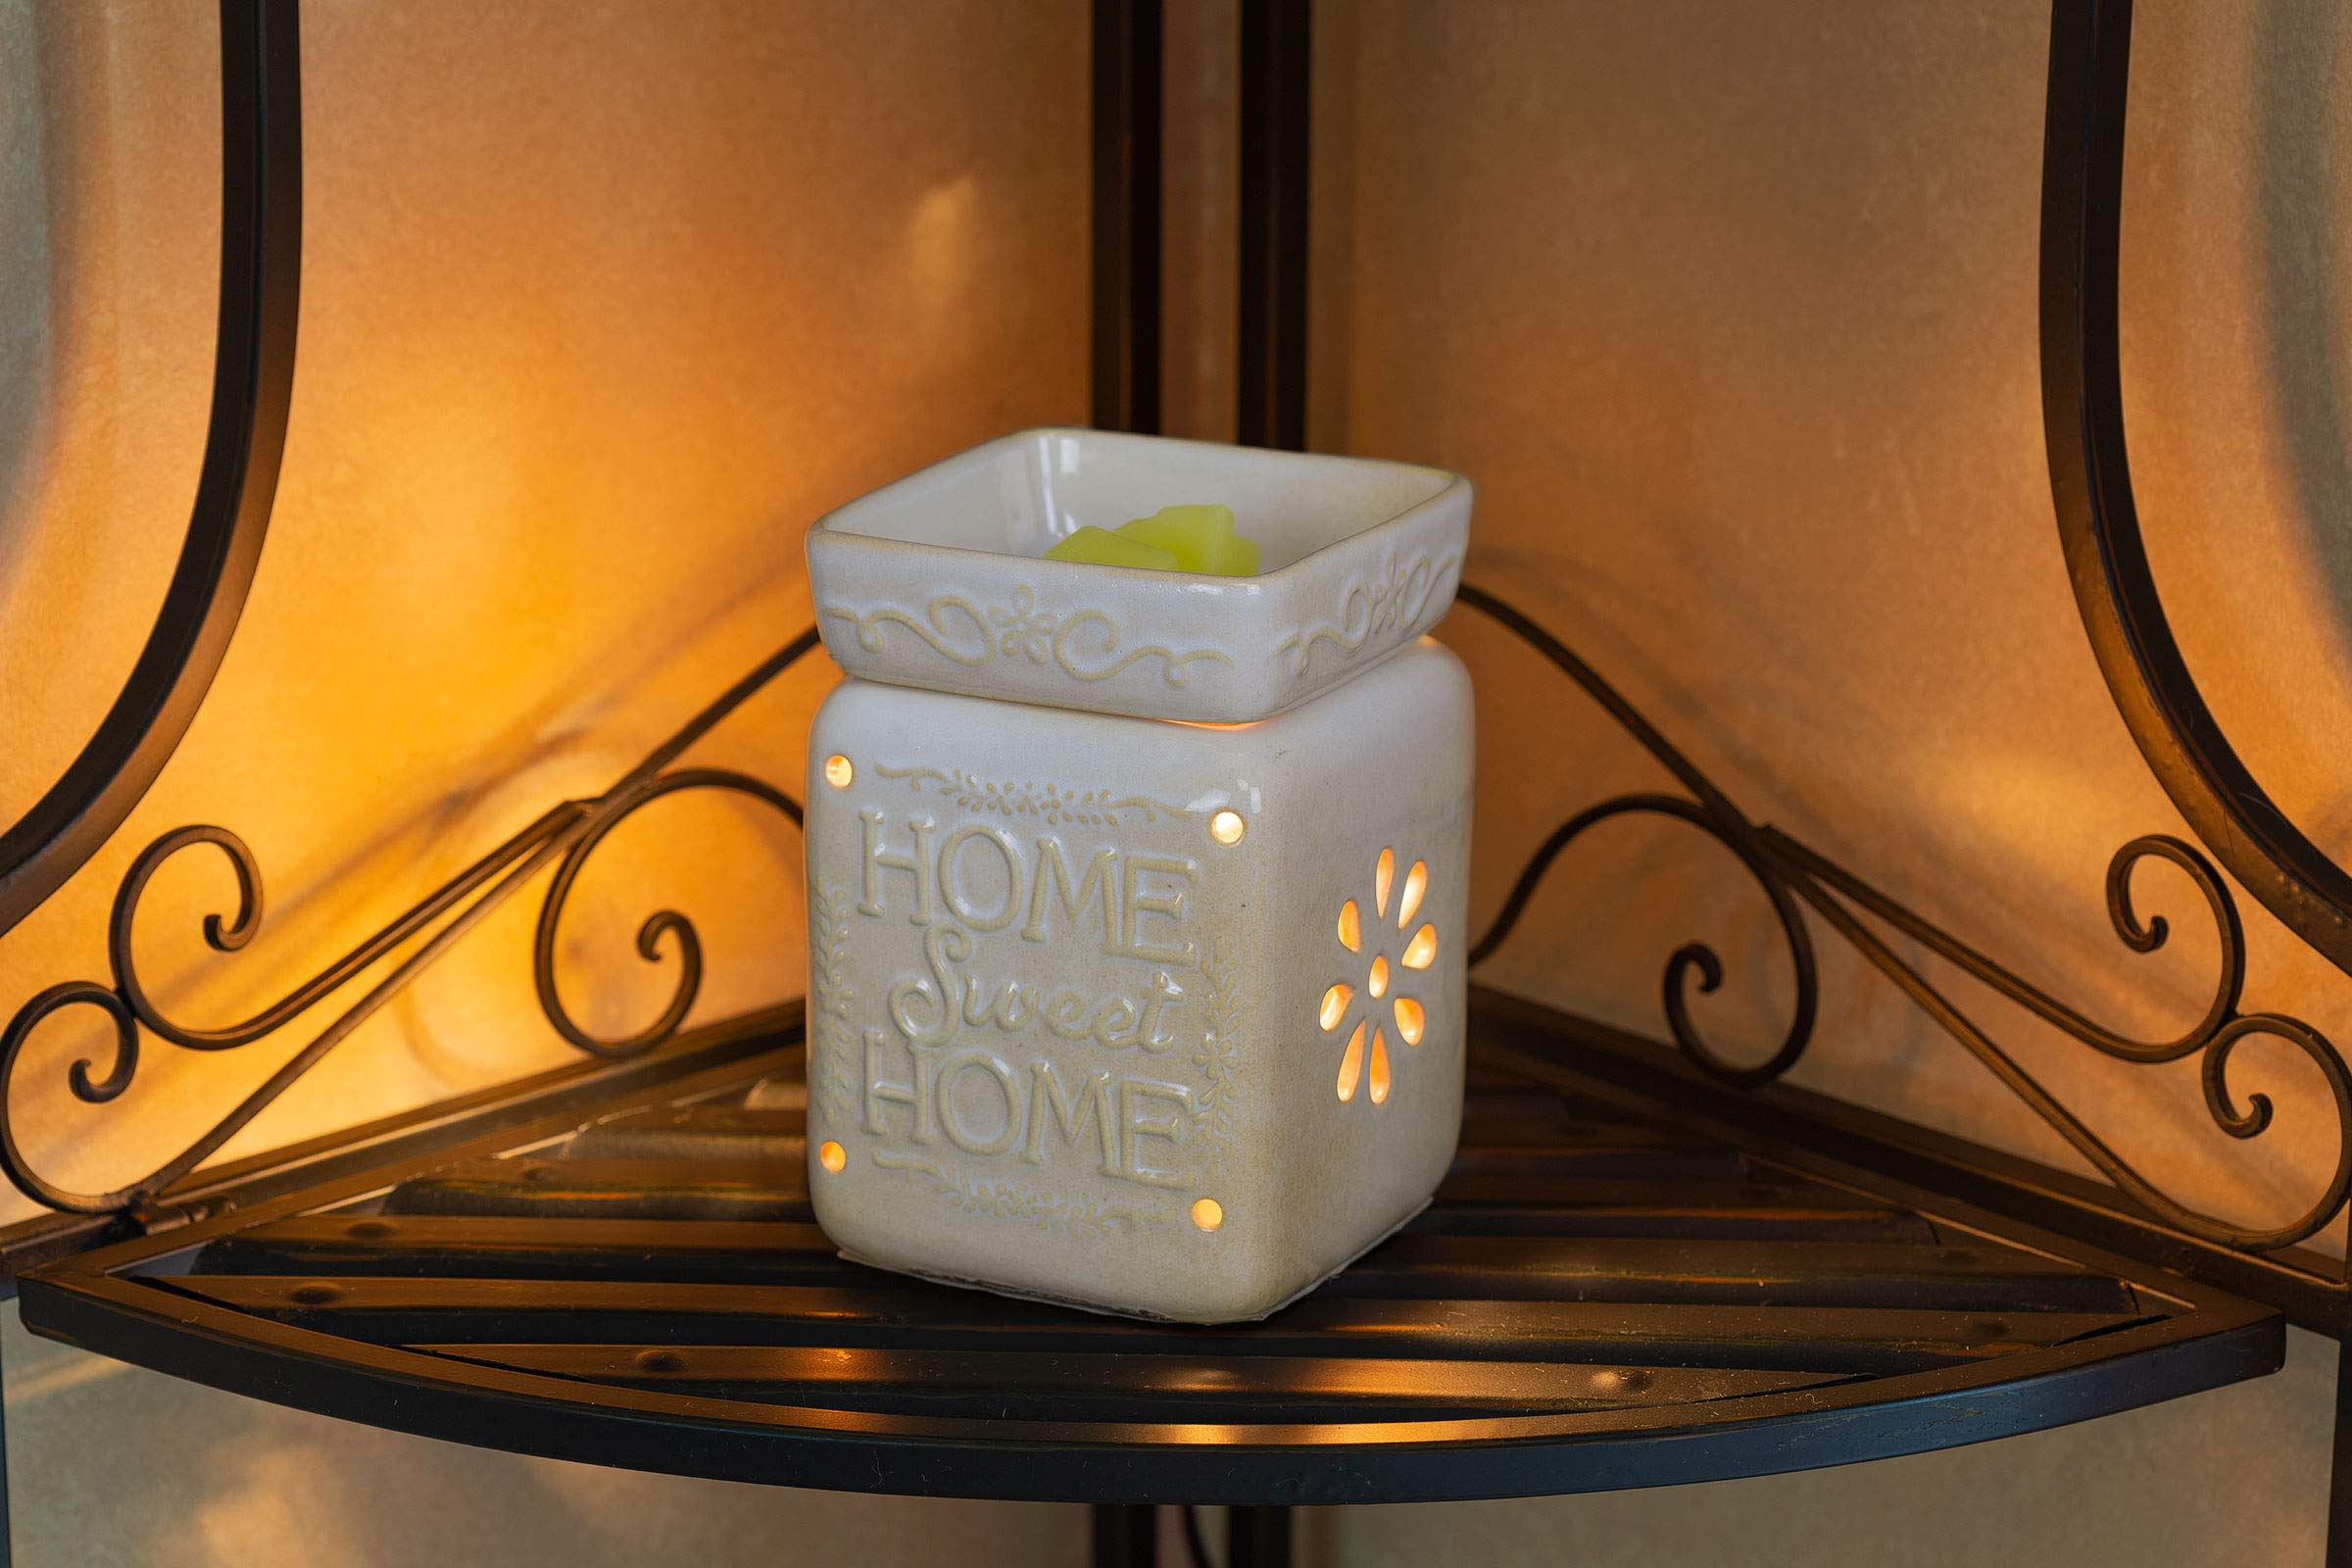 Ceramic Fragrance Warmer (Home Sweet Home) by VP Home (Image #2)